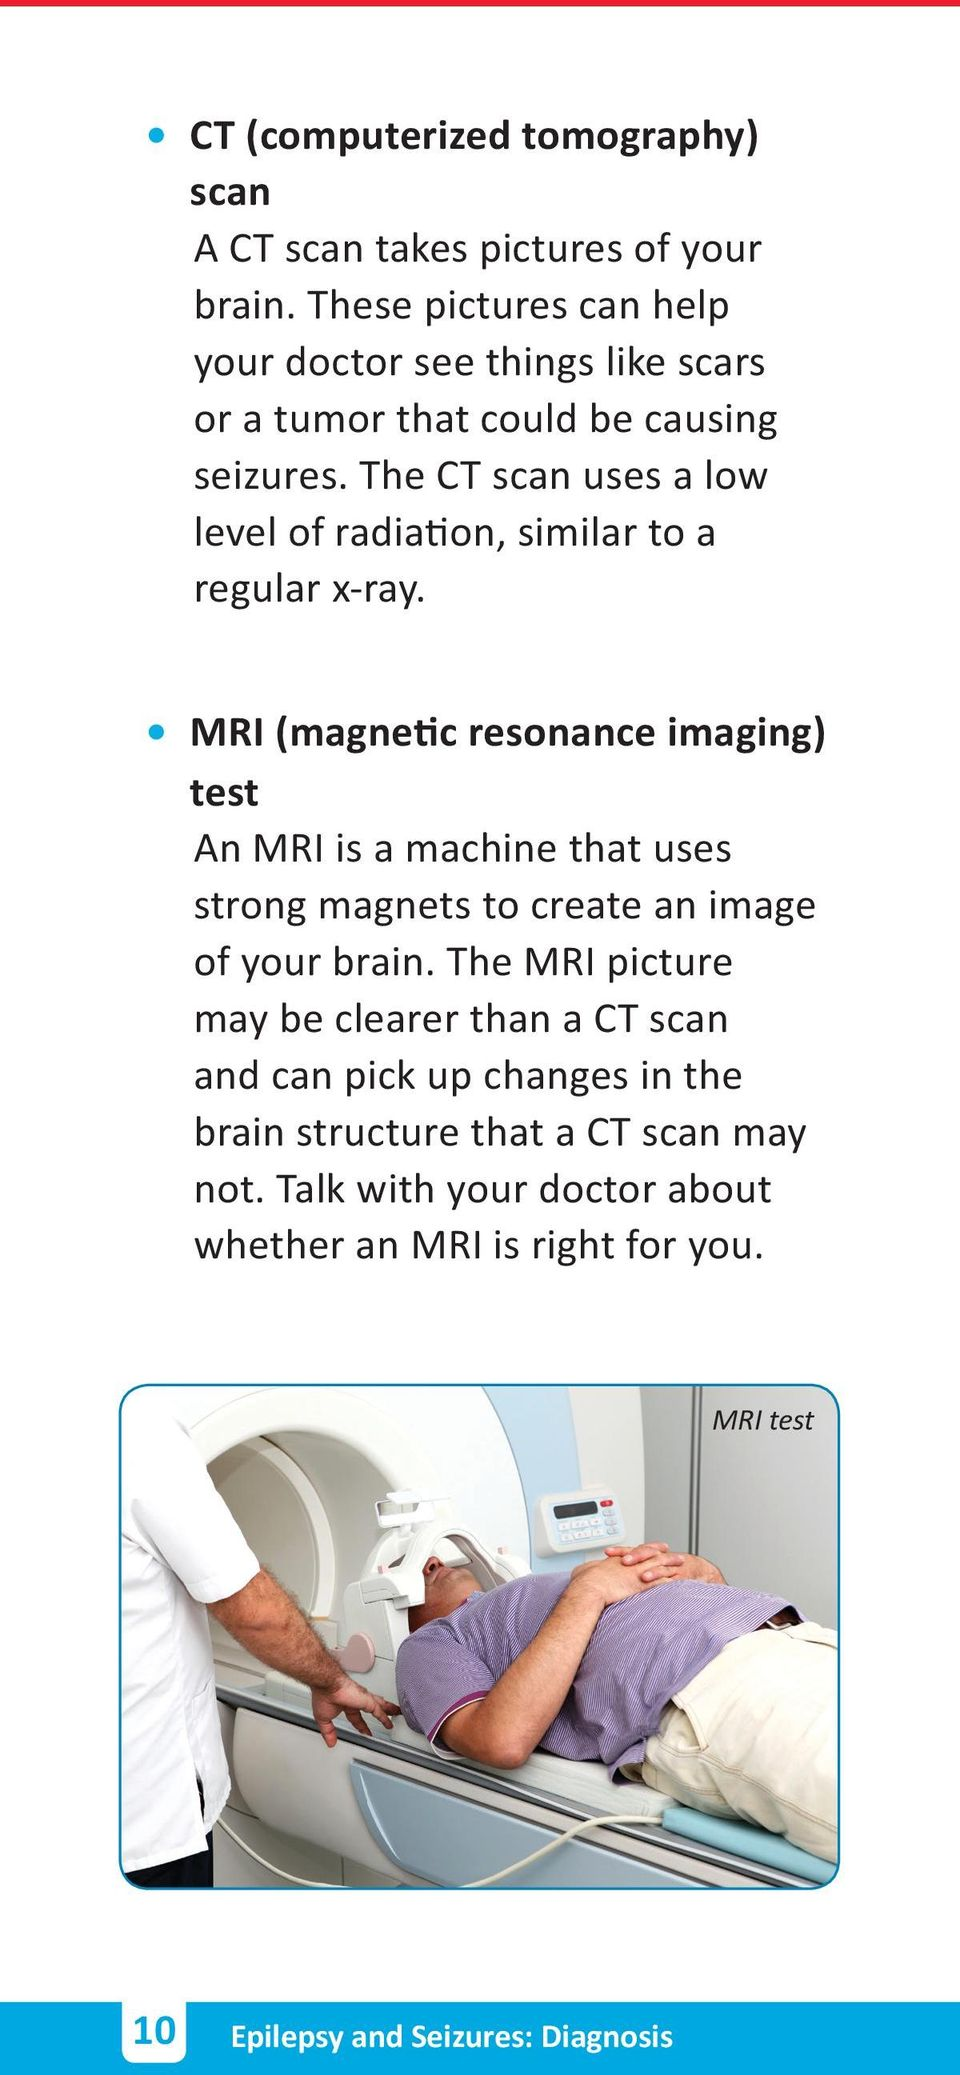 The CT scan uses a low level of radiation, similar to a regular x-ray.